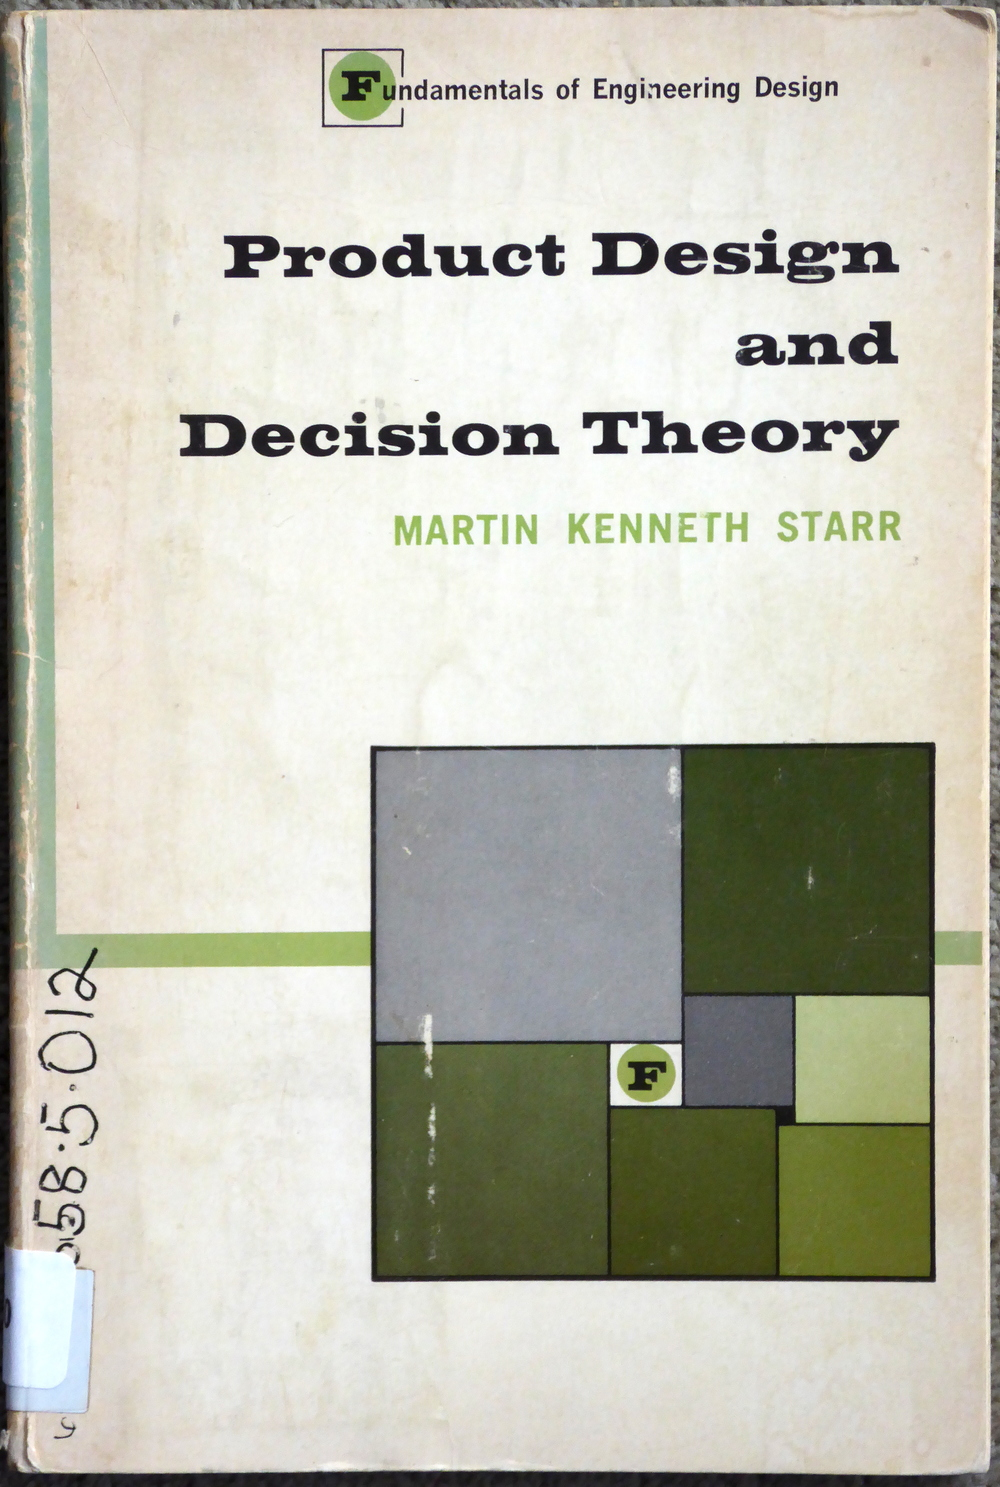 DDR_P1010067_Starr_ProductDesignDecisionTheory.JPG